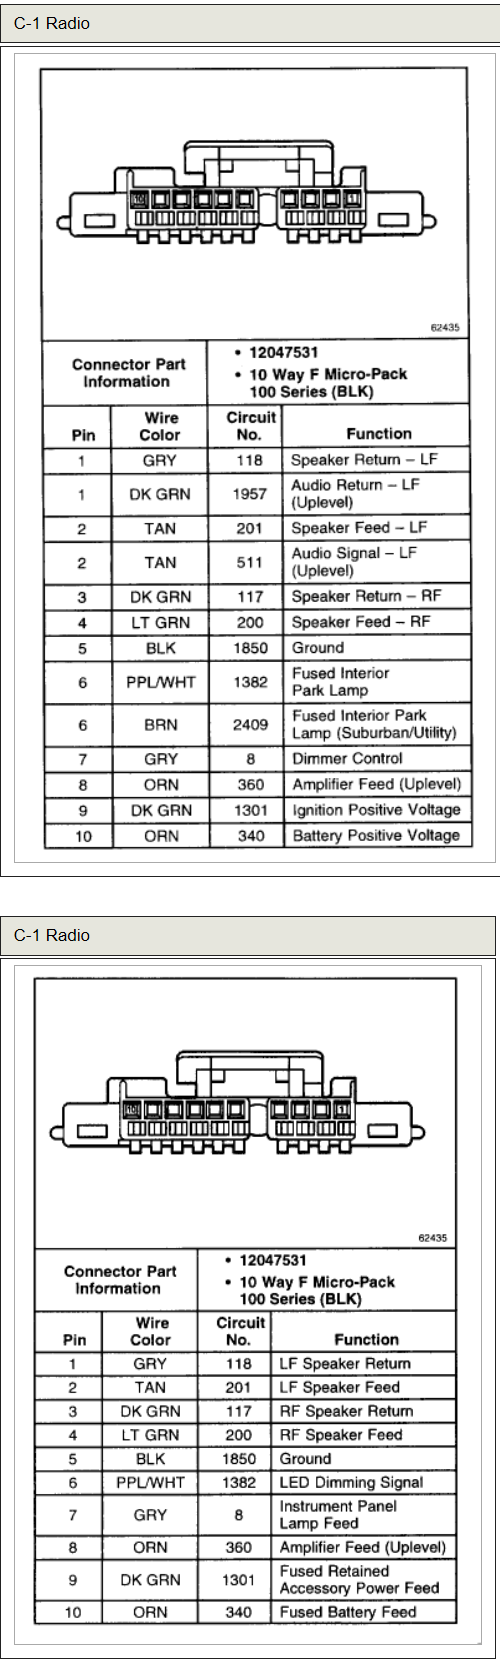 Chevrolet Car Radio Stereo Audio Wiring Diagram Autoradio Connector. Chevrolet Car Radio Stereo Audio Wiring Diagram Autoradio Connector Wire Installation Schematic Schema Esquema De Conexiones Anschlusskammern Konektor. Chevrolet. 2012 Chevy Silveroado 1500 Radio Wiring Diagram At Scoala.co